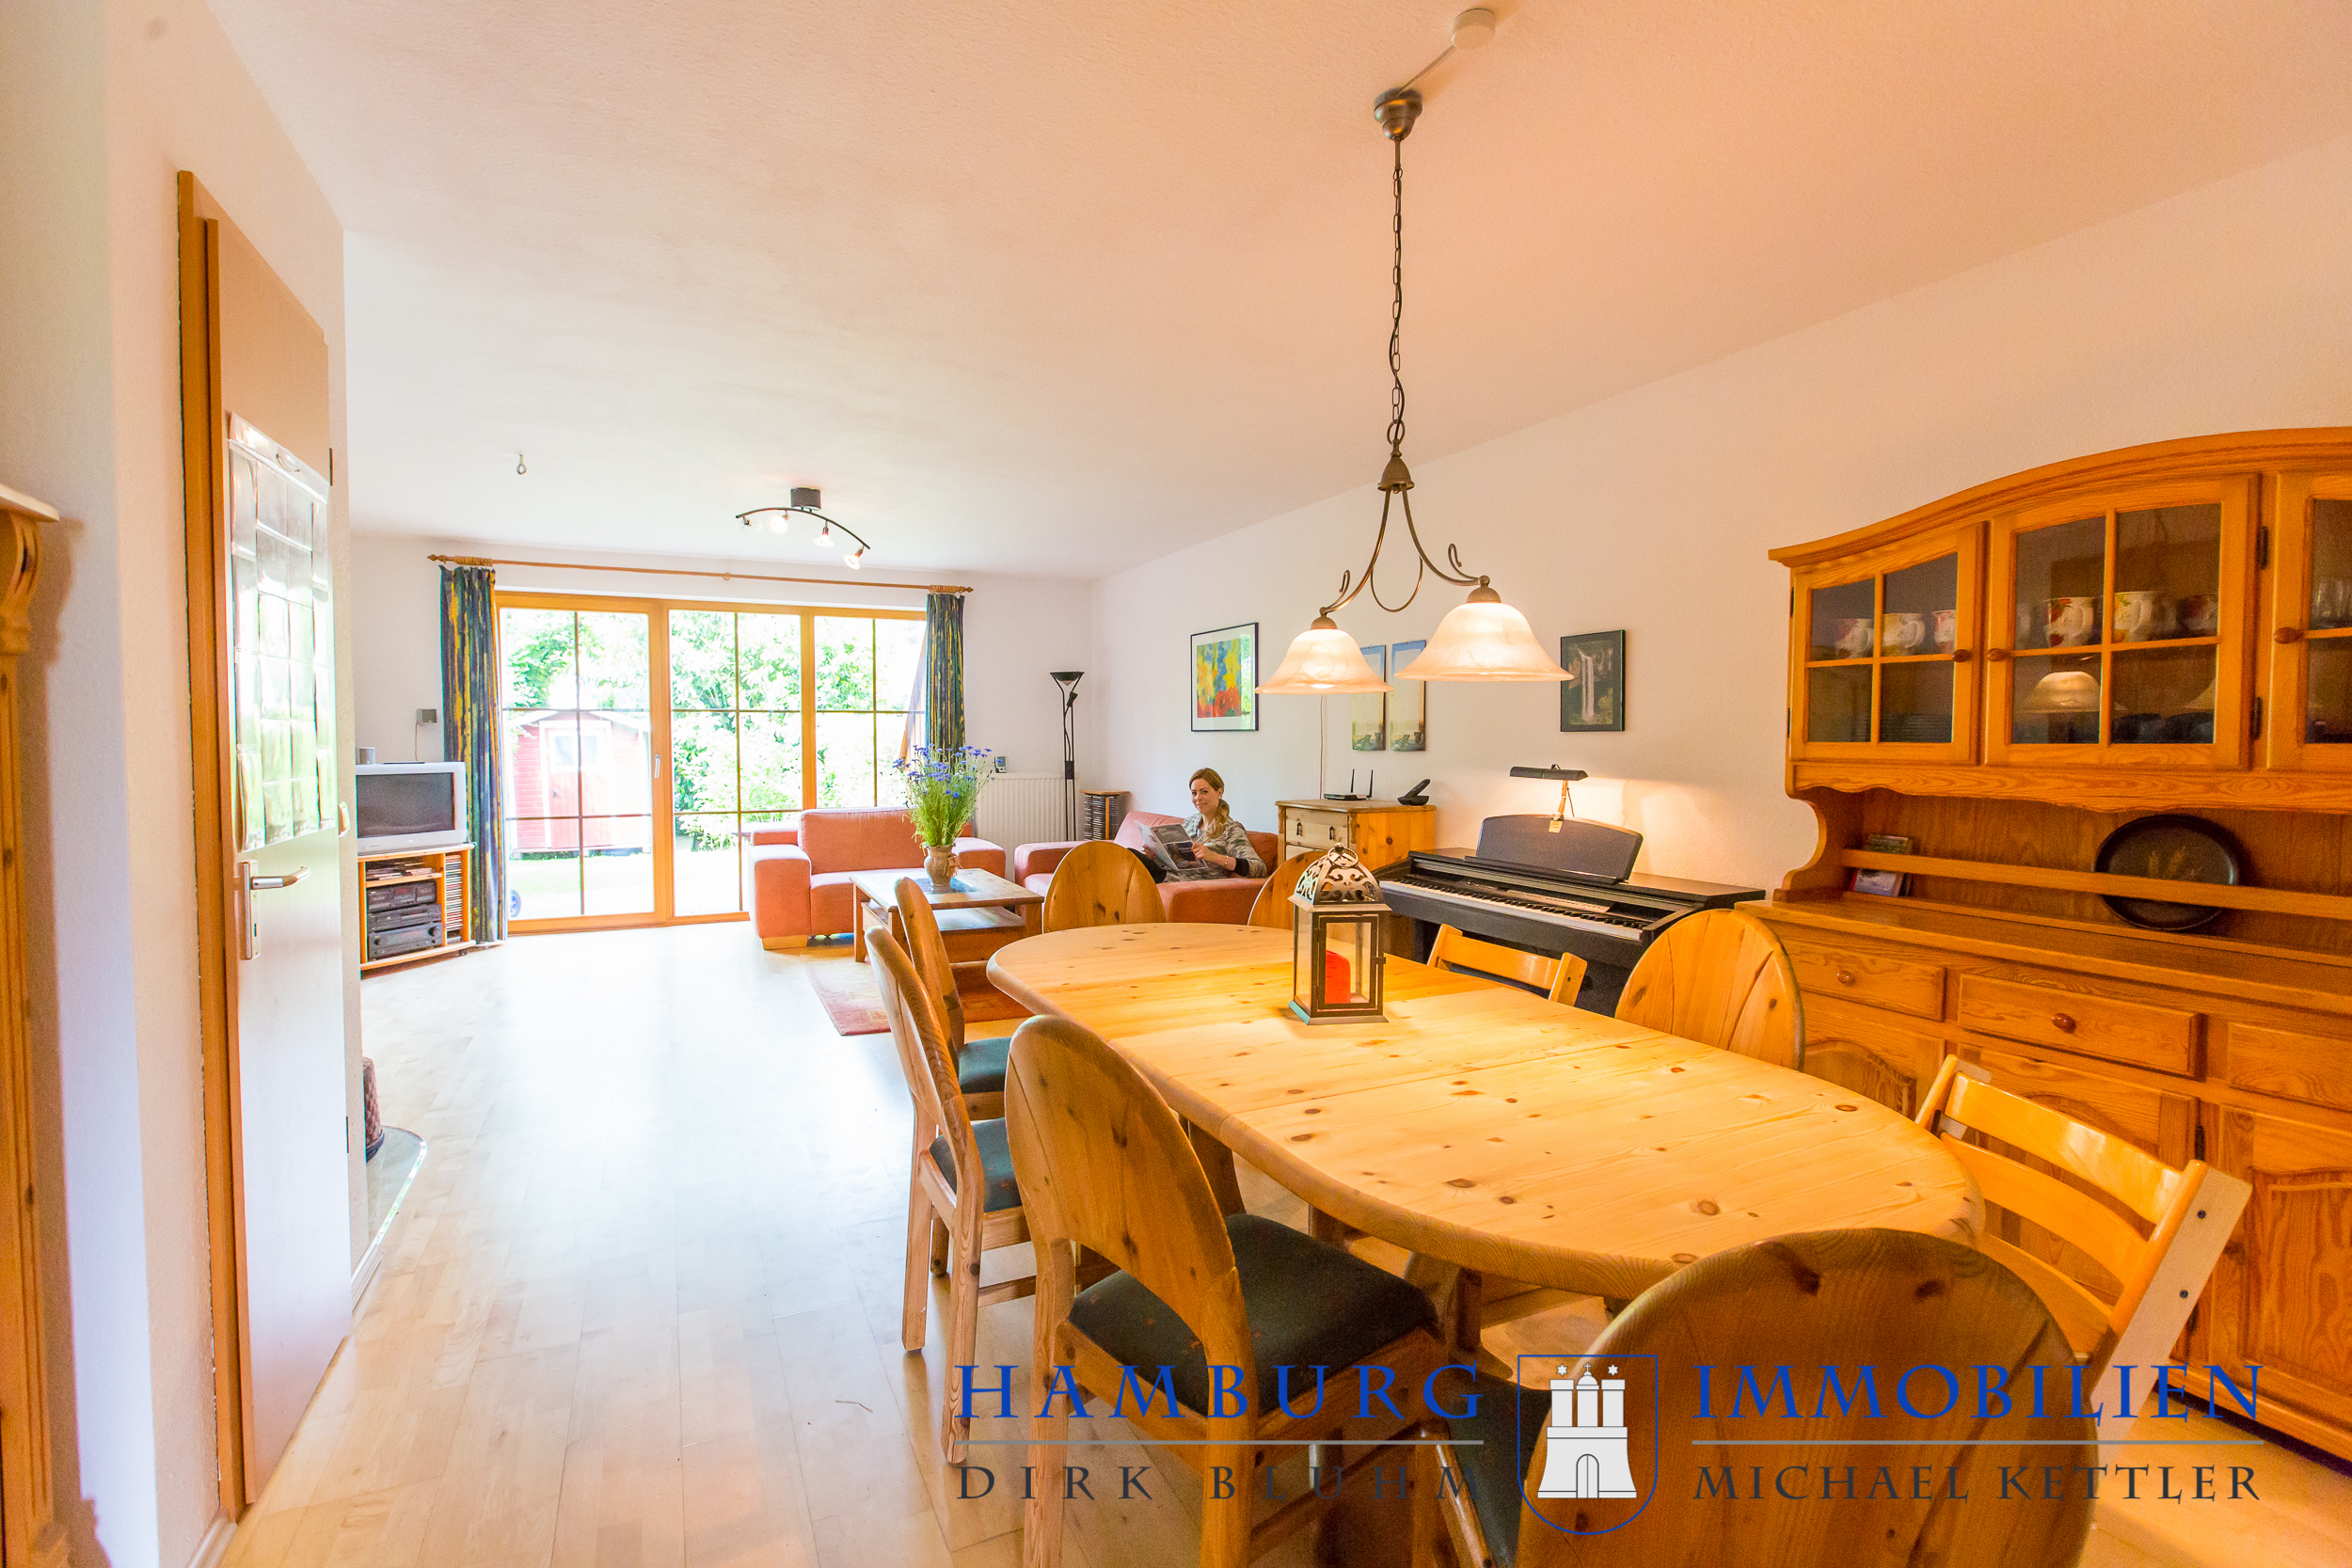 Esszimmer Feine Kost Hamburg Esszimmer Hamburg Free At The Dining Room Table With Jasmin From